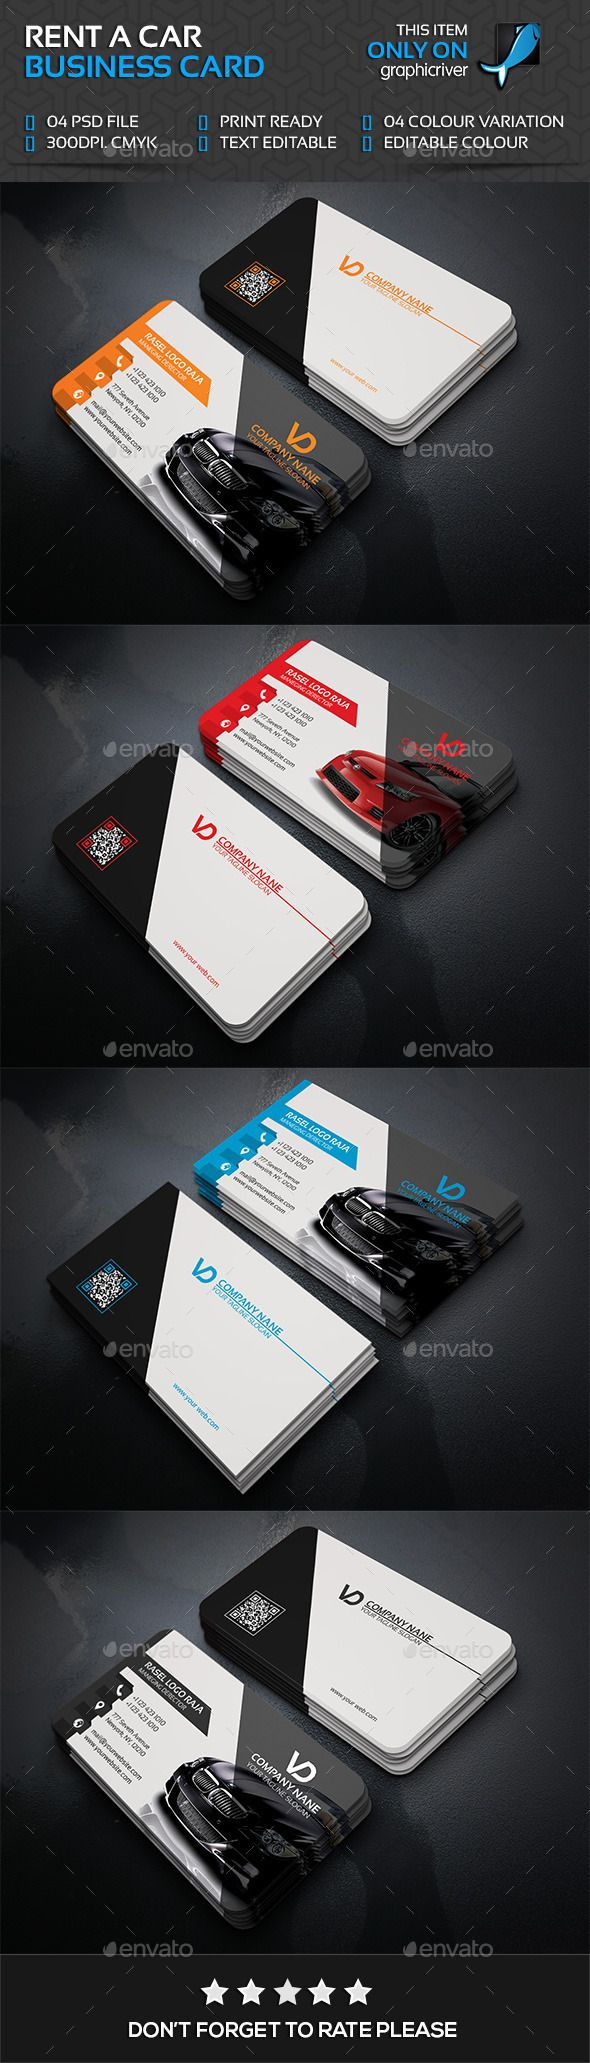 Rant A Car Business Card Template PSD #visitcard #design Download: http://graphicriver.net/item/rant-a-car-business-card/13495827?ref=ksioks